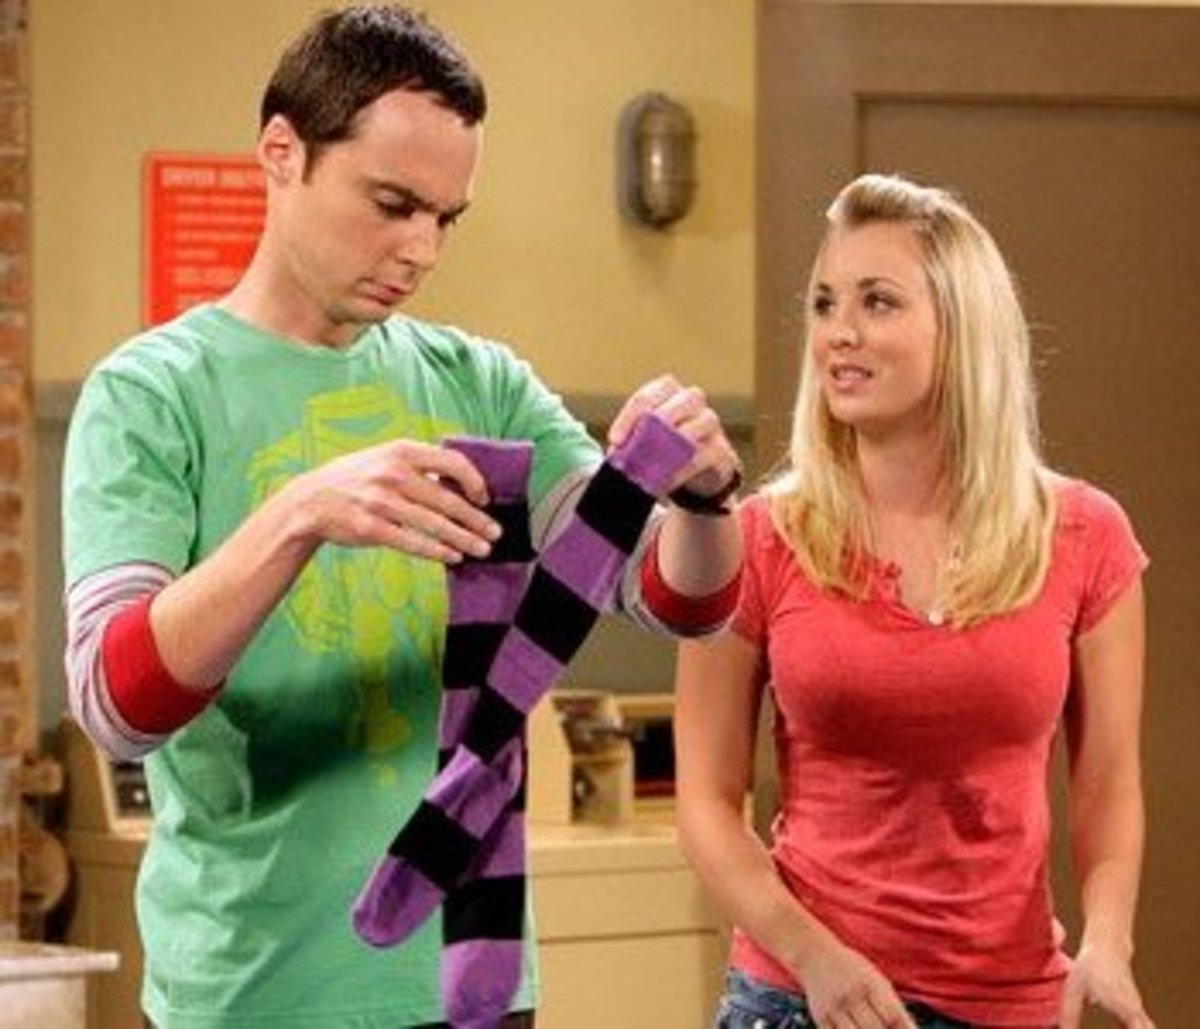 We just can't get enough of Sheldon and Penny, can we?